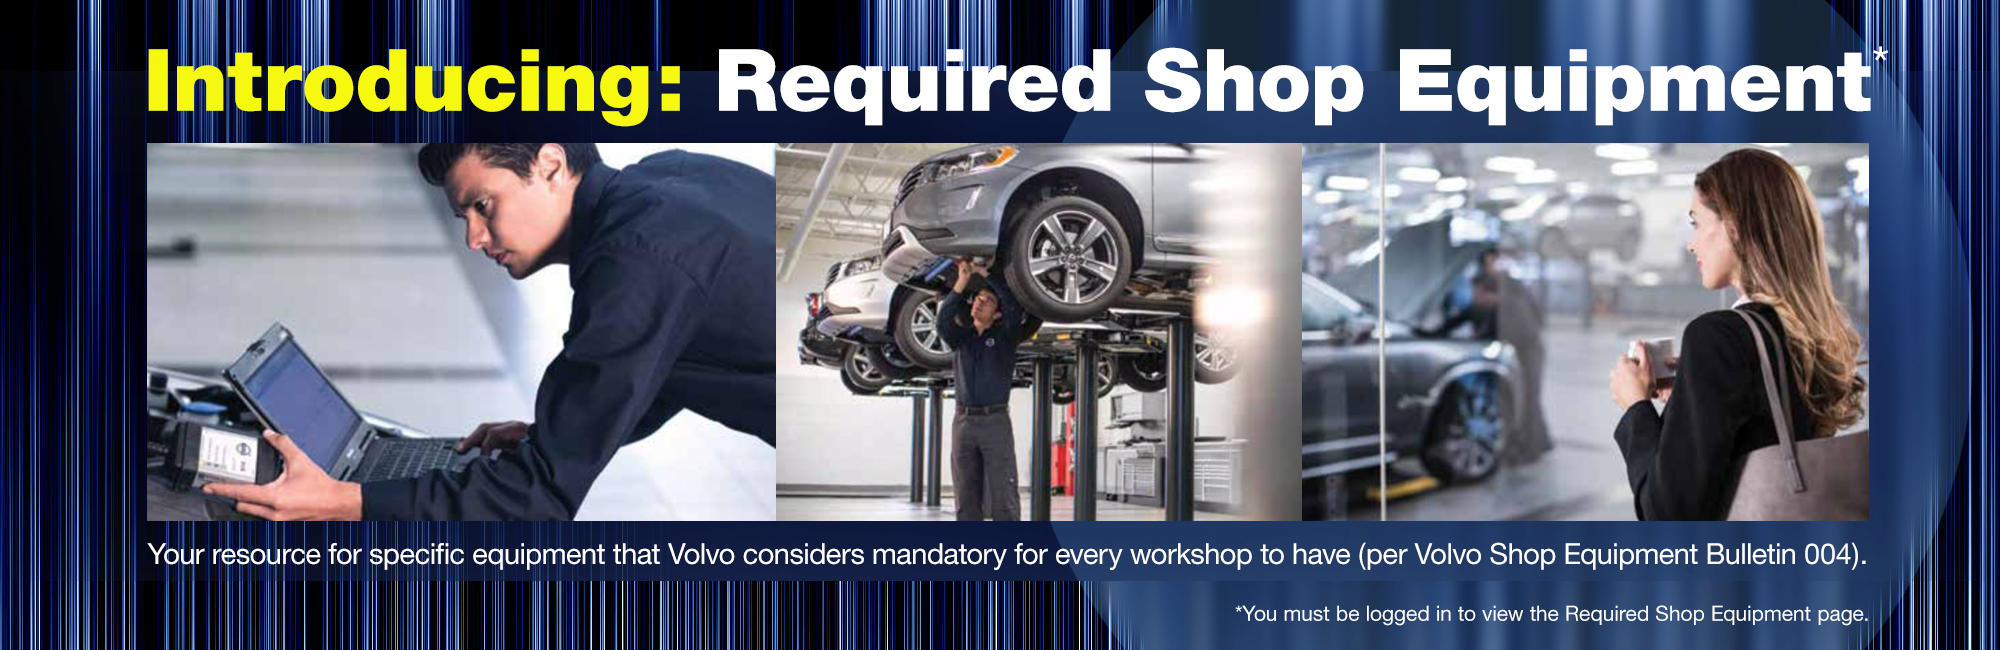 required Volvo shop equipment